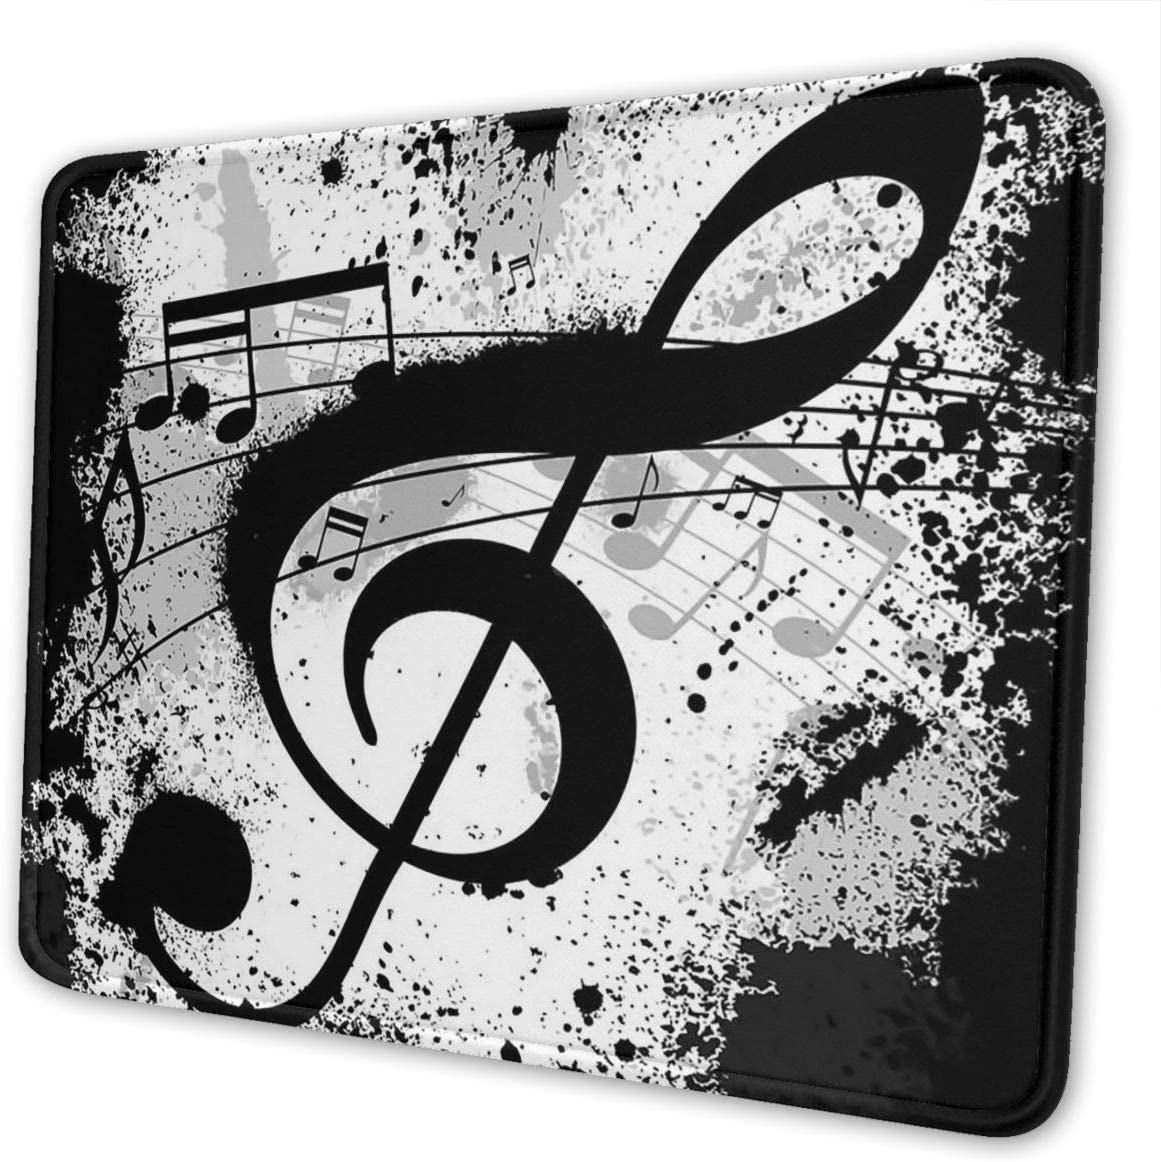 Mouse Pad Music Note Gaming with Mousepad Edges New Shipping Free Stitched Non-Sli Max 74% OFF